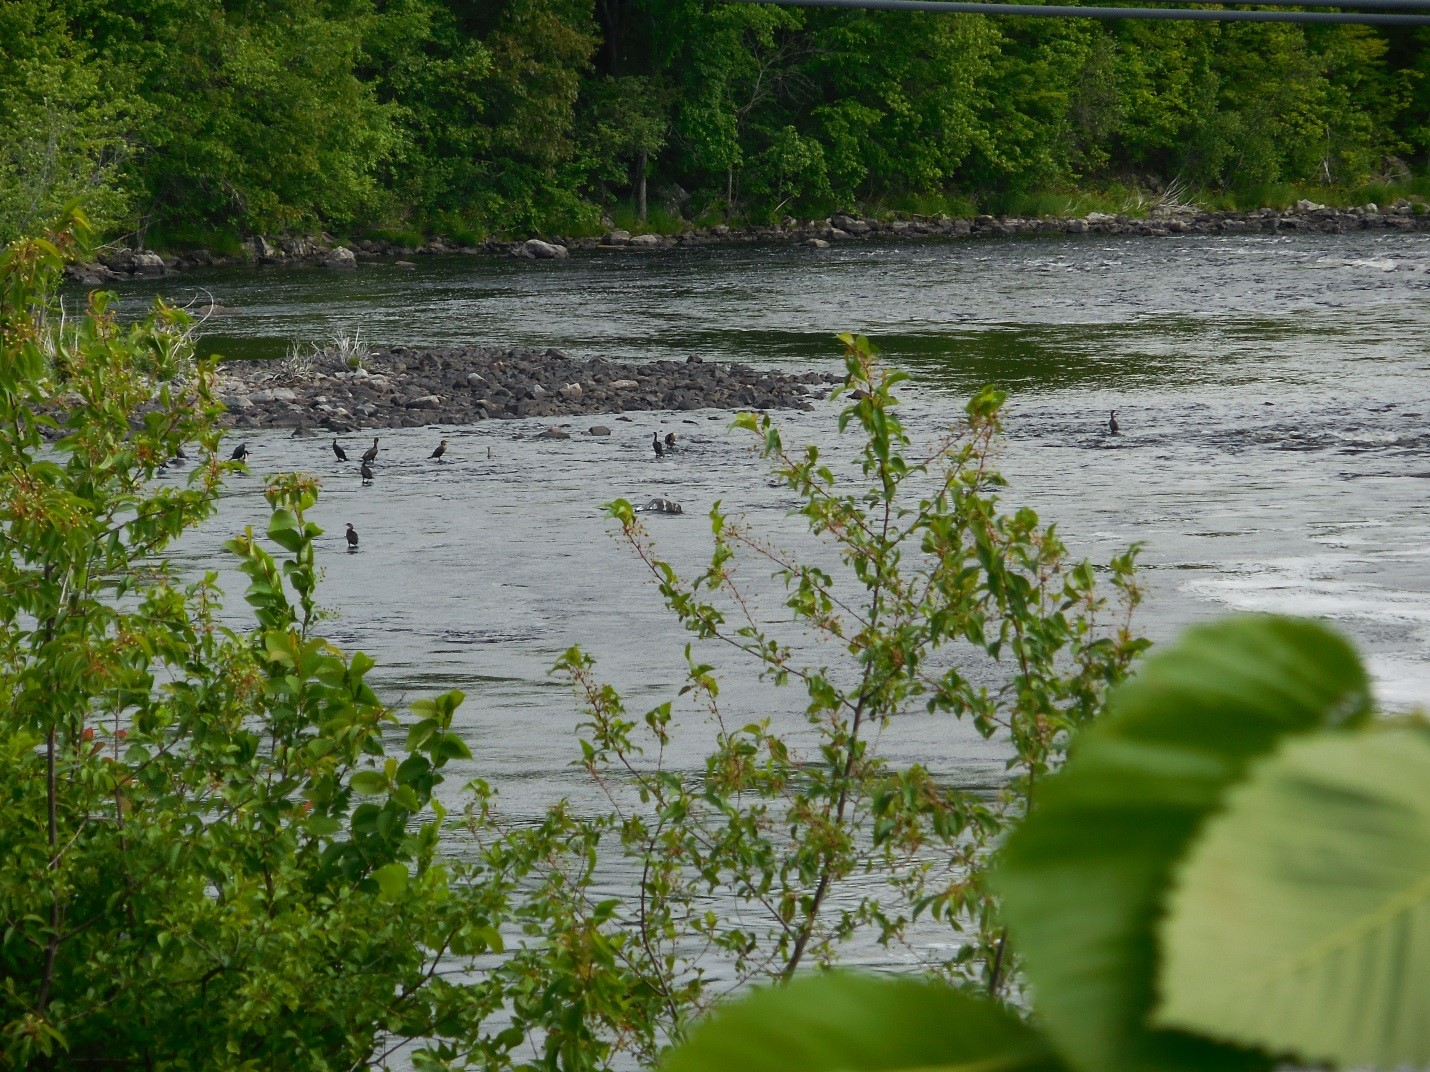 A group of birds wait for alewives to begin migrating up the St. Croix River to eat. Credit: Shannon E. Runyon